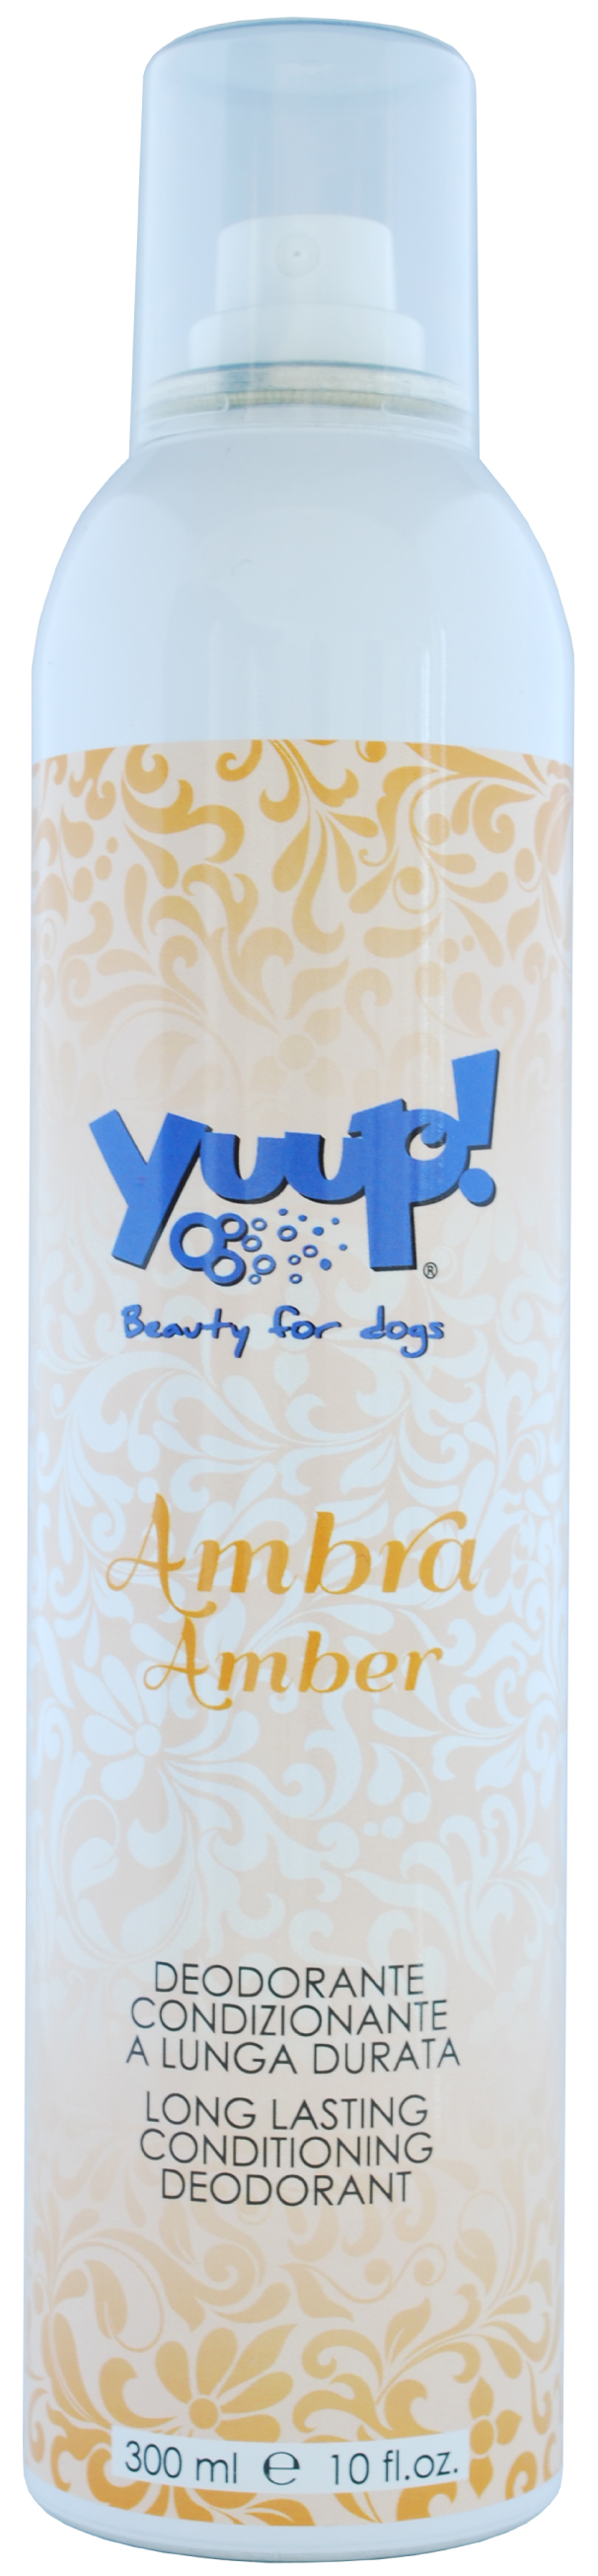 Yuup Amber Long Lasting Conditioning Deodorant